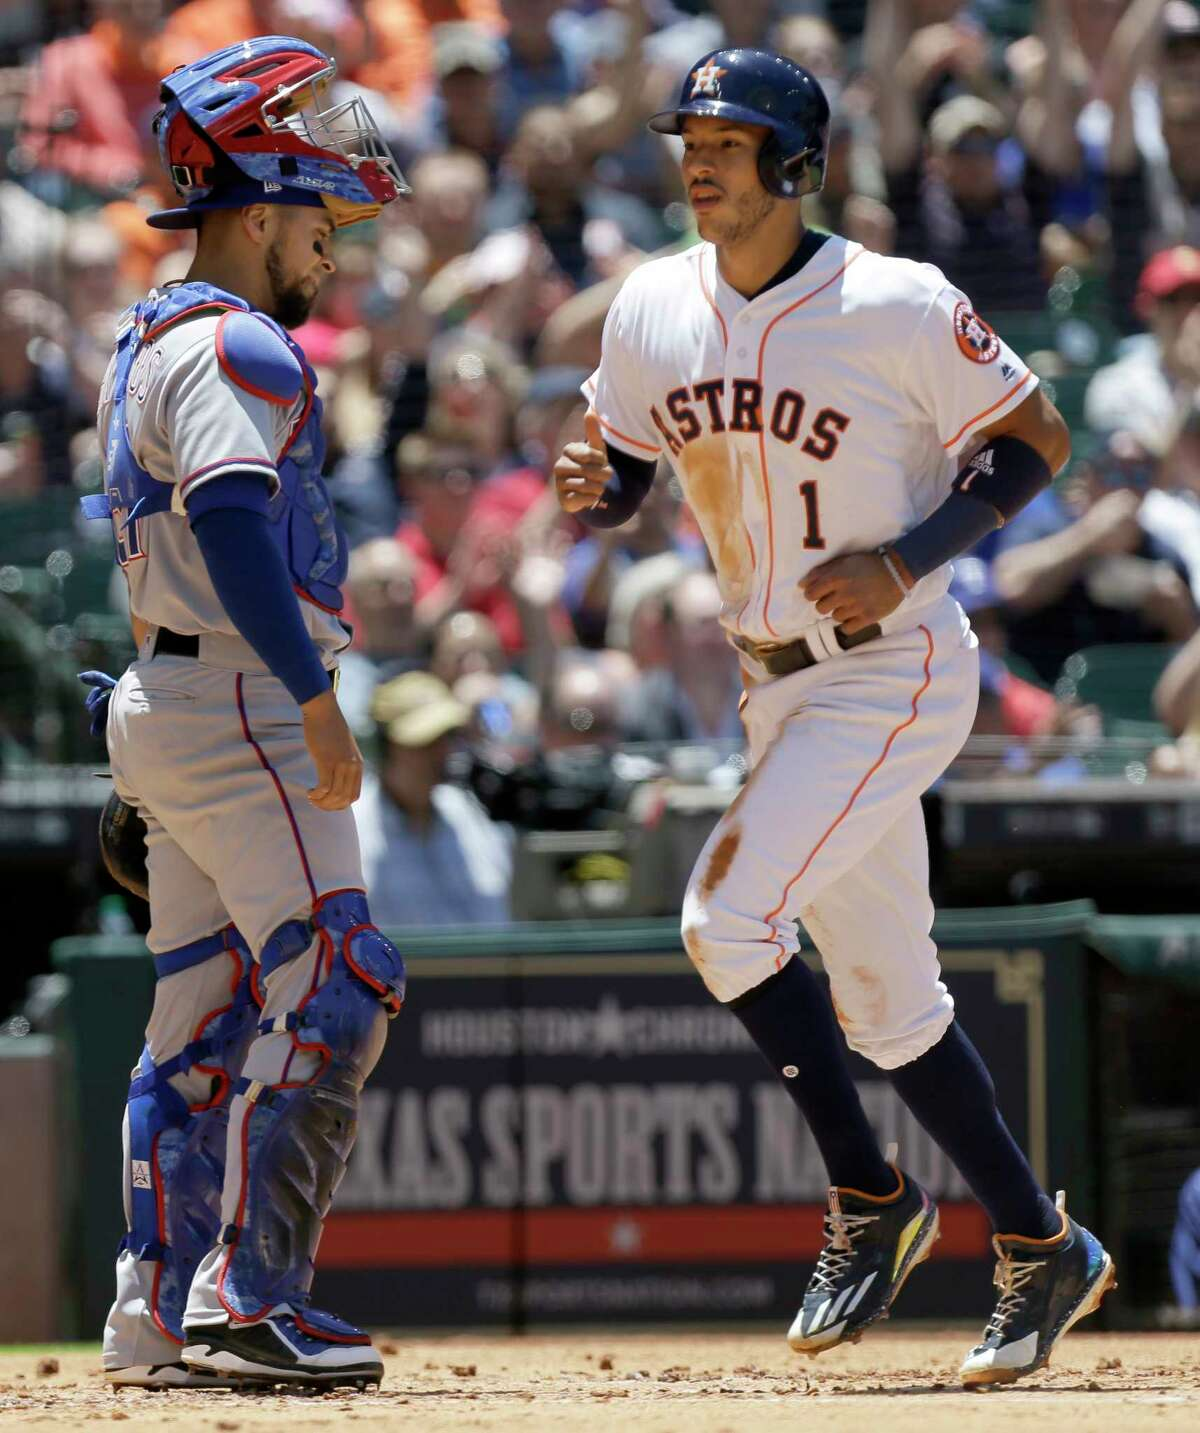 Texas Rangers catcher Robinson Chirinos waits as Houston Astros Carlos Correa crosses the plate on a RBI single hit by Evan Gattis during the first inning at Minute Maid Park Thursday, May 4, 2017, in Houston. ( Melissa Phillip / Houston Chronicle )